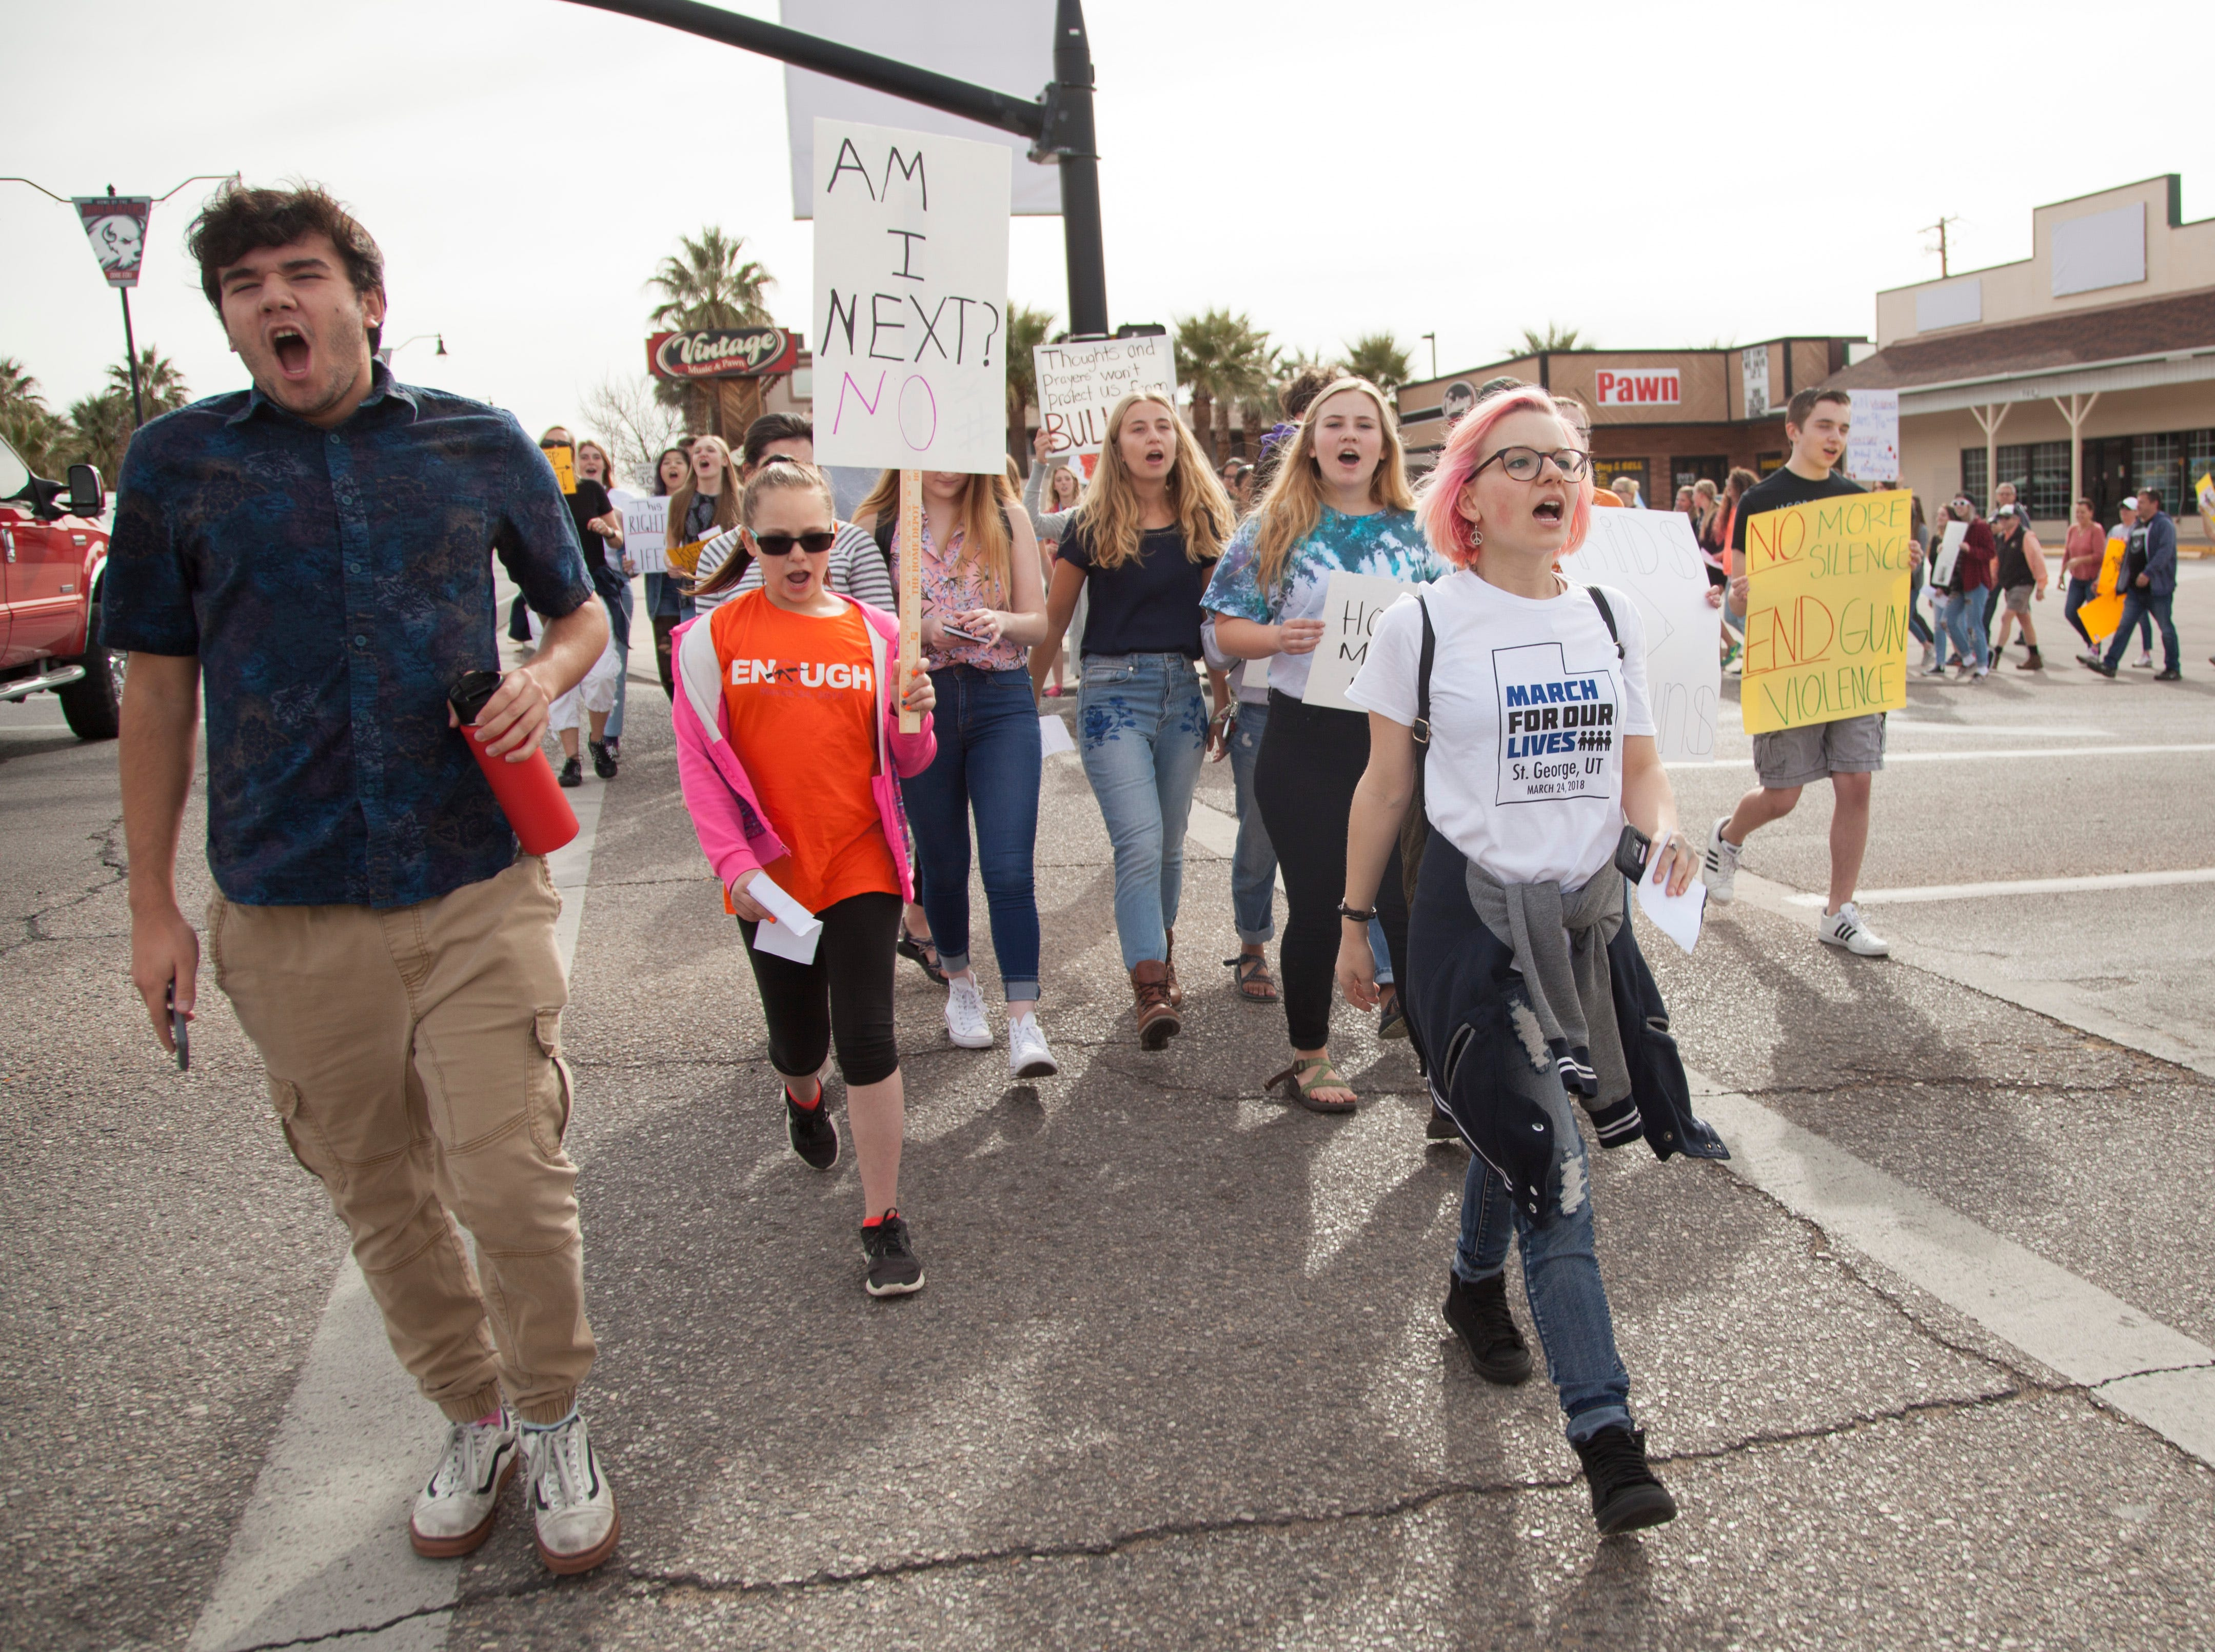 Members of the community, led by DSU students, participate in the March For Our Lives demonstration Saturday, March 24, 2018. Hundreds of participants marched from the DSU campus to the St. George City office.